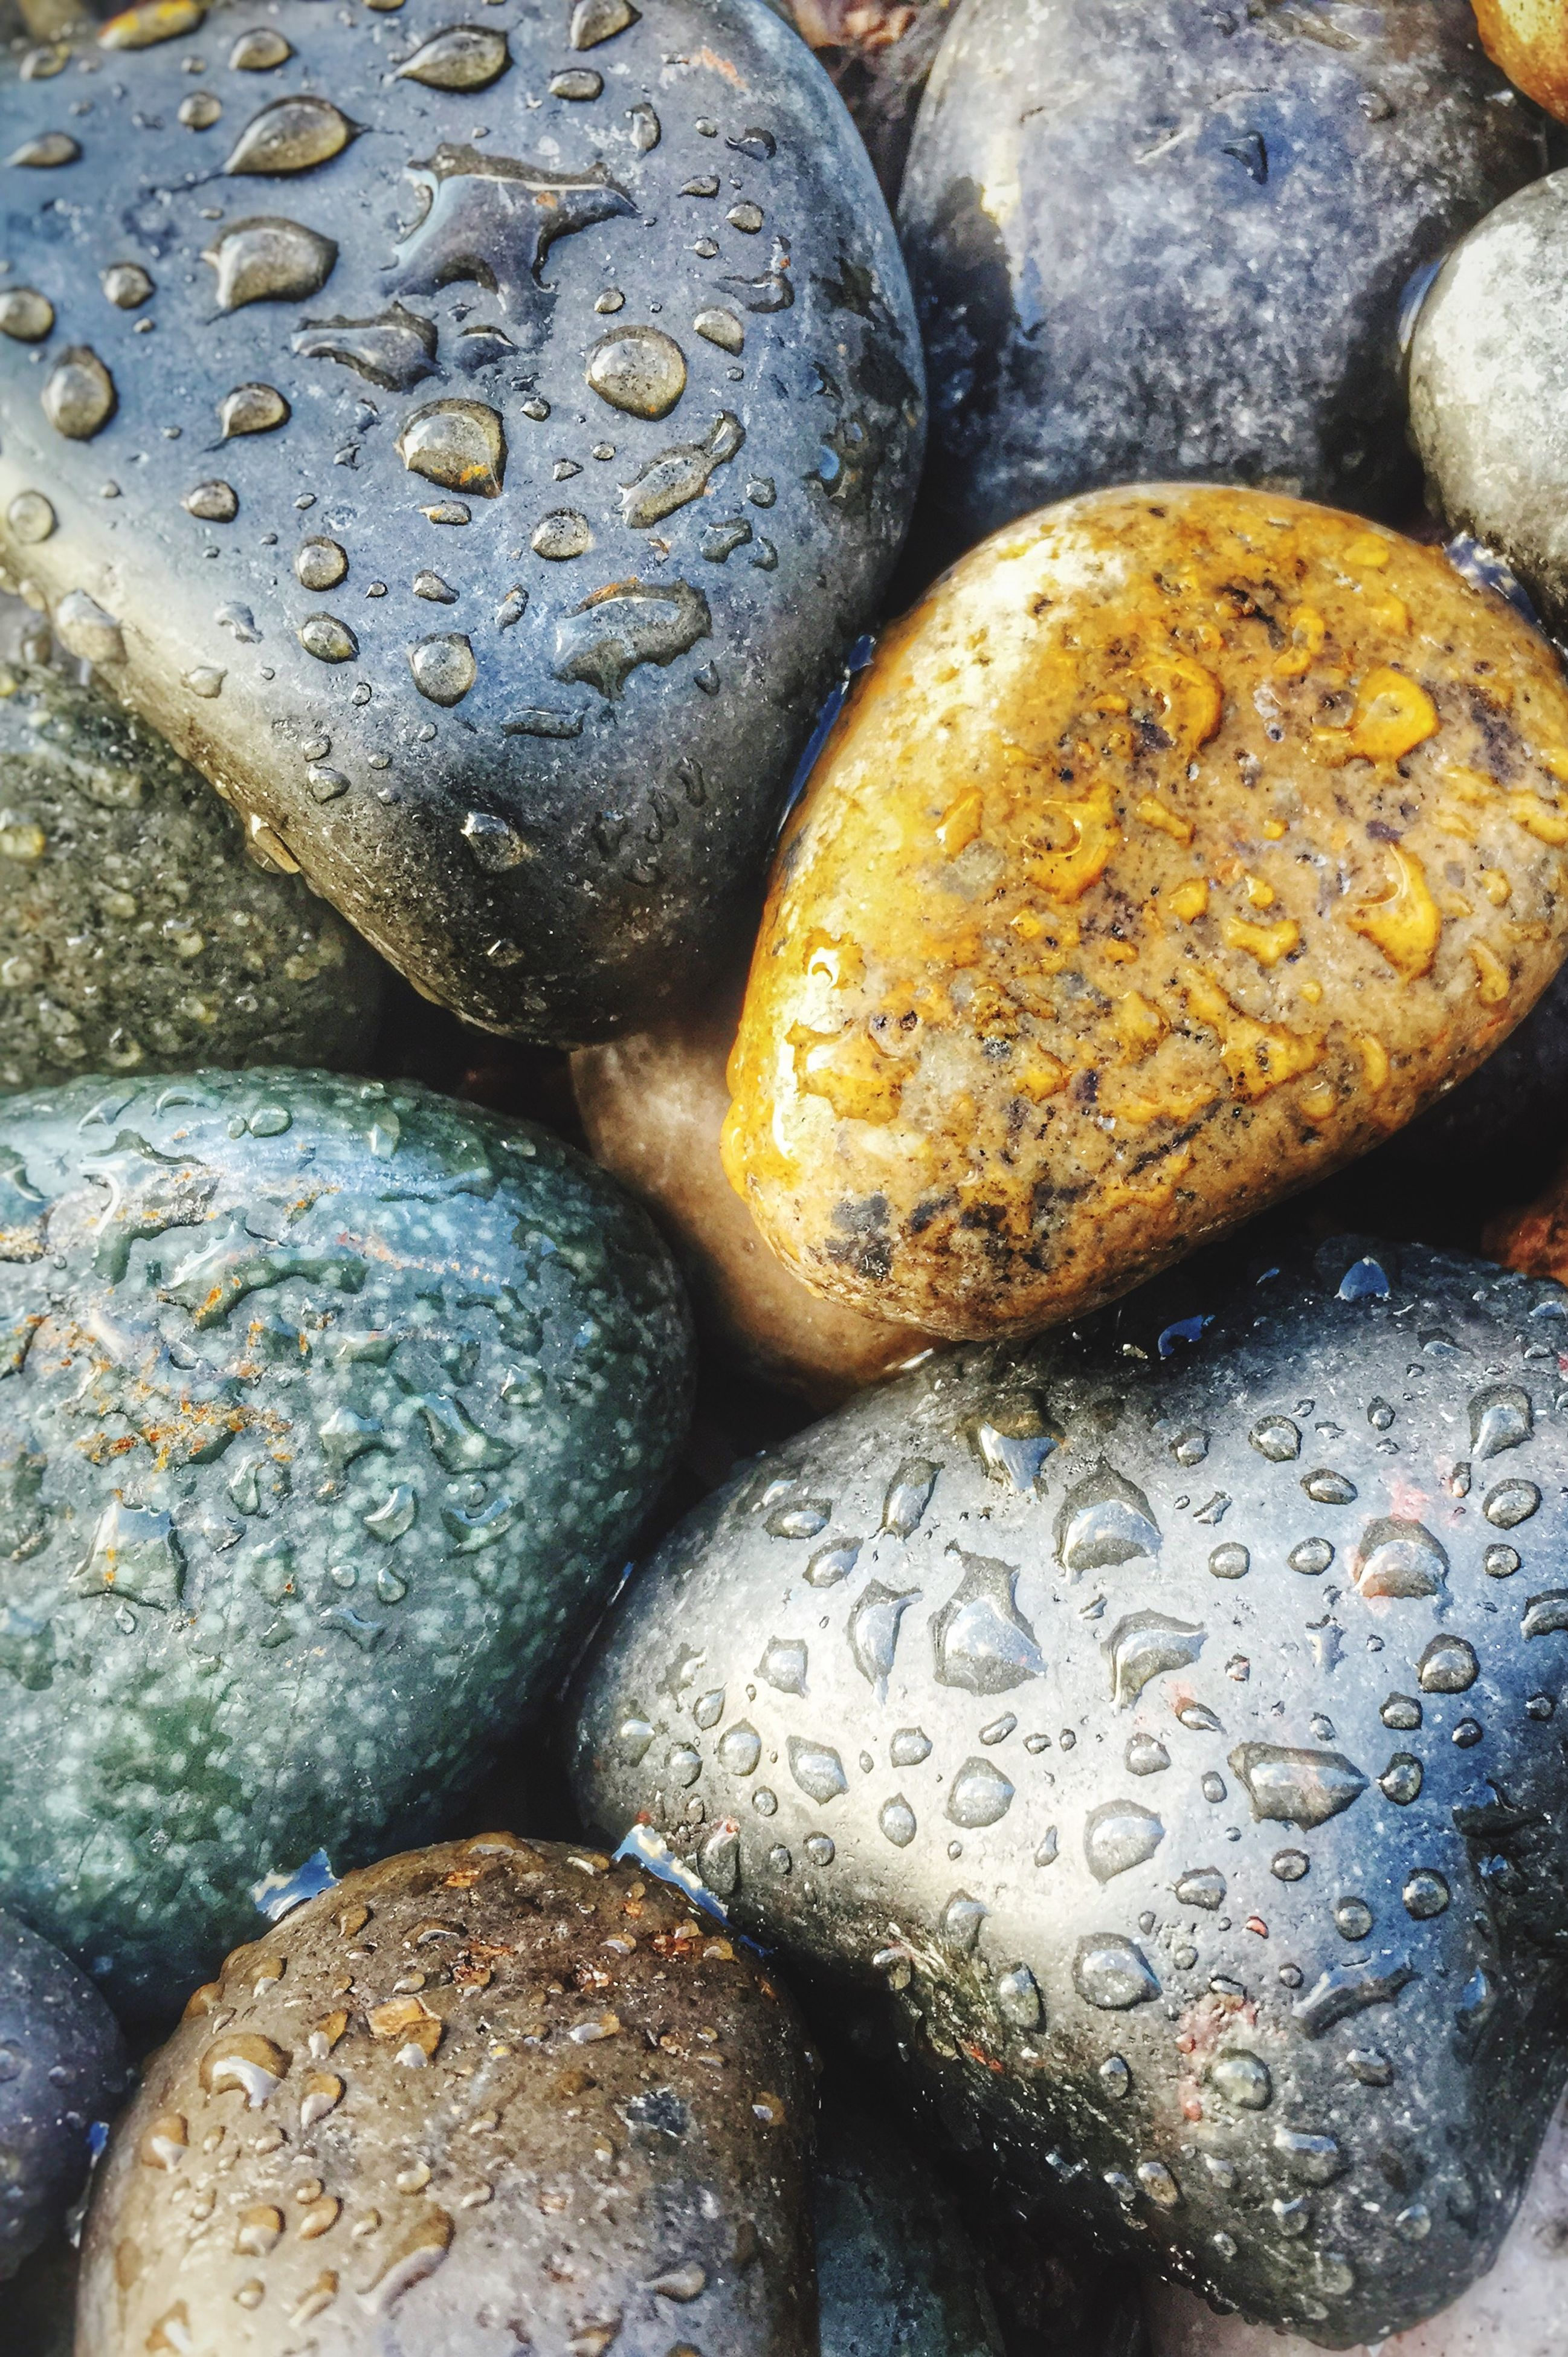 food and drink, freshness, food, close-up, indoors, full frame, backgrounds, wet, abundance, still life, textured, water, high angle view, healthy eating, stone - object, no people, large group of objects, day, pebble